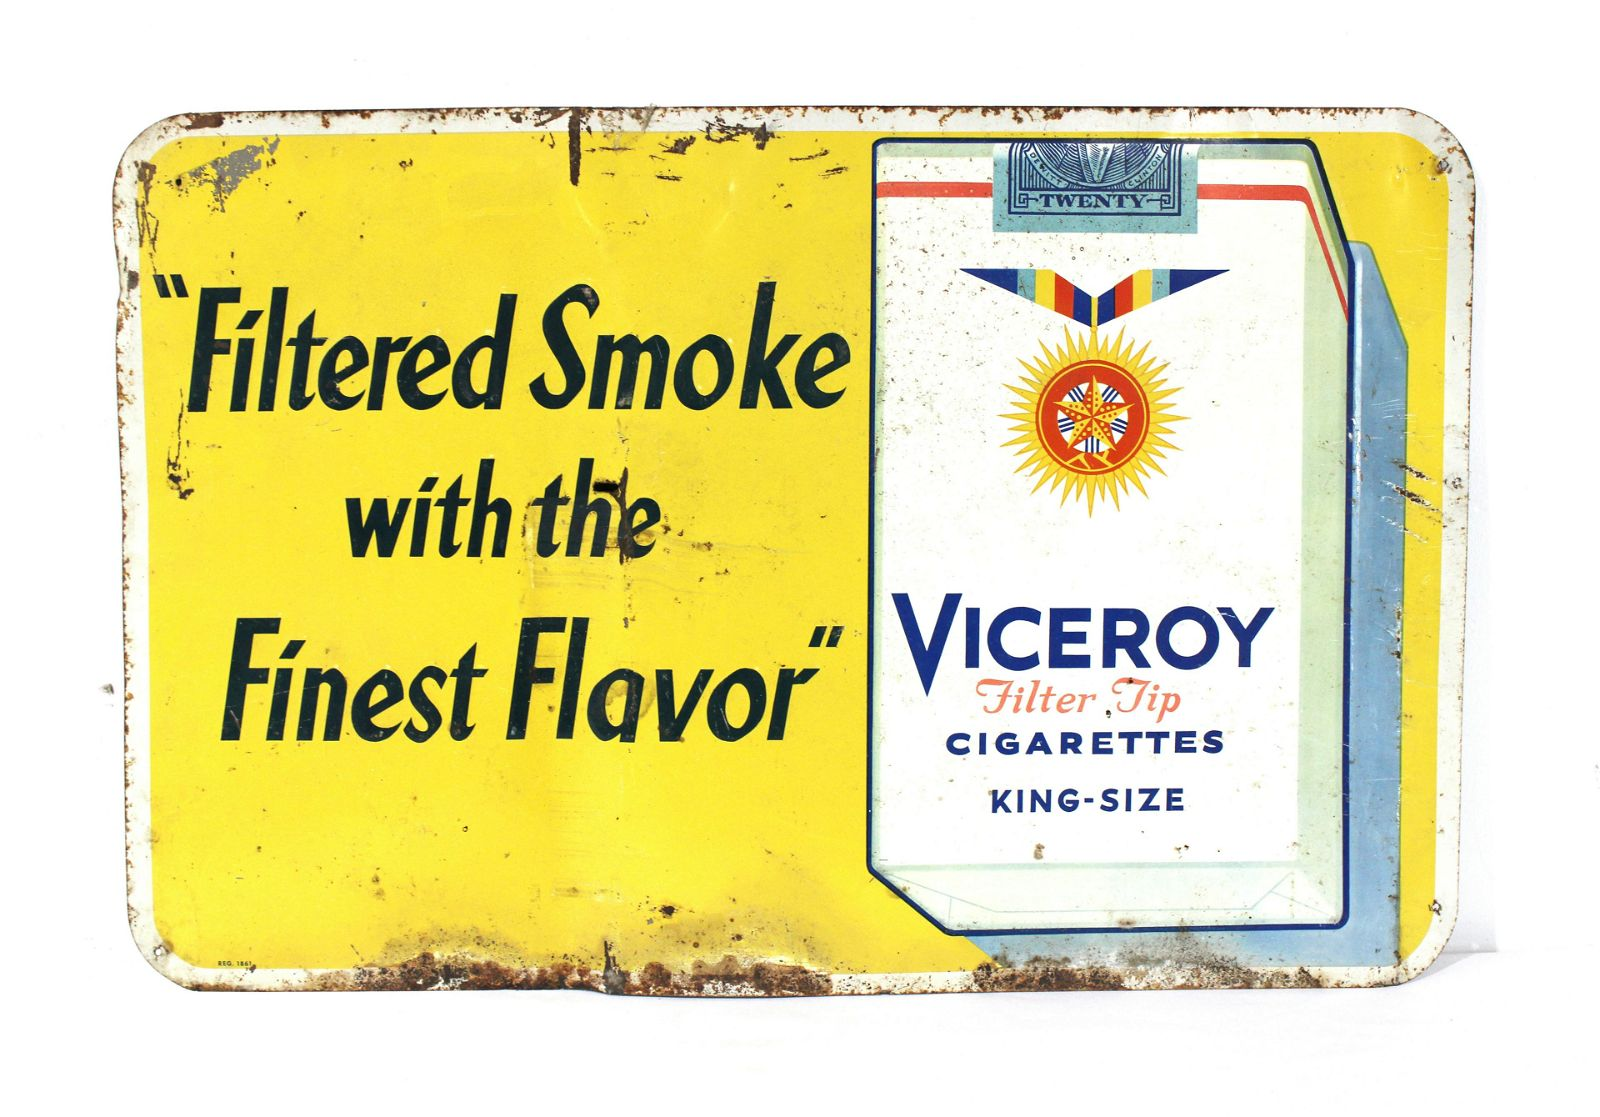 Viceroy Cigarettes Tobacco Advertising Tin Sign